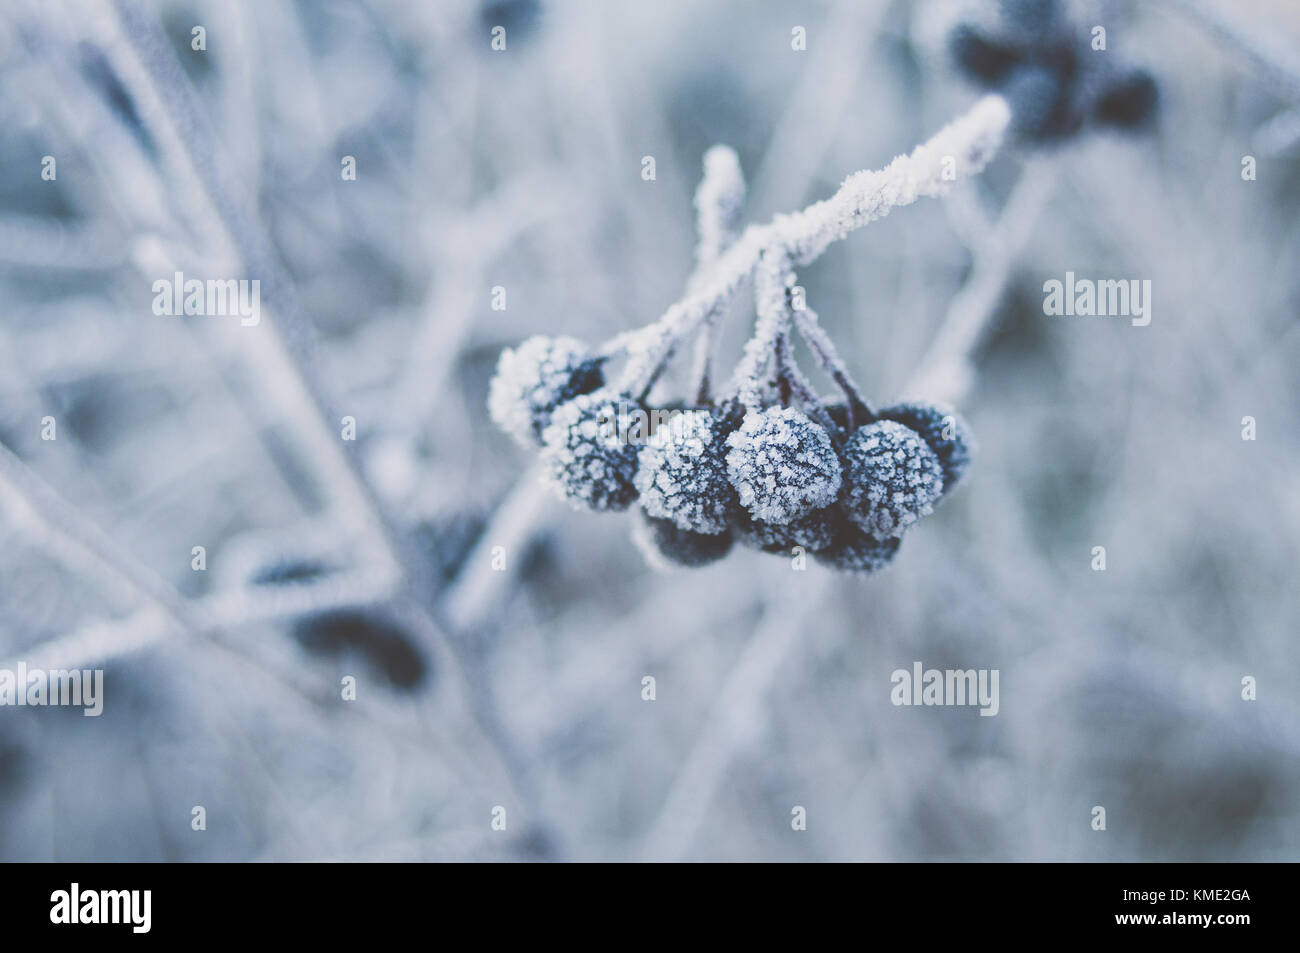 Hoarfrost crystals on Aronia berries. - Stock Image